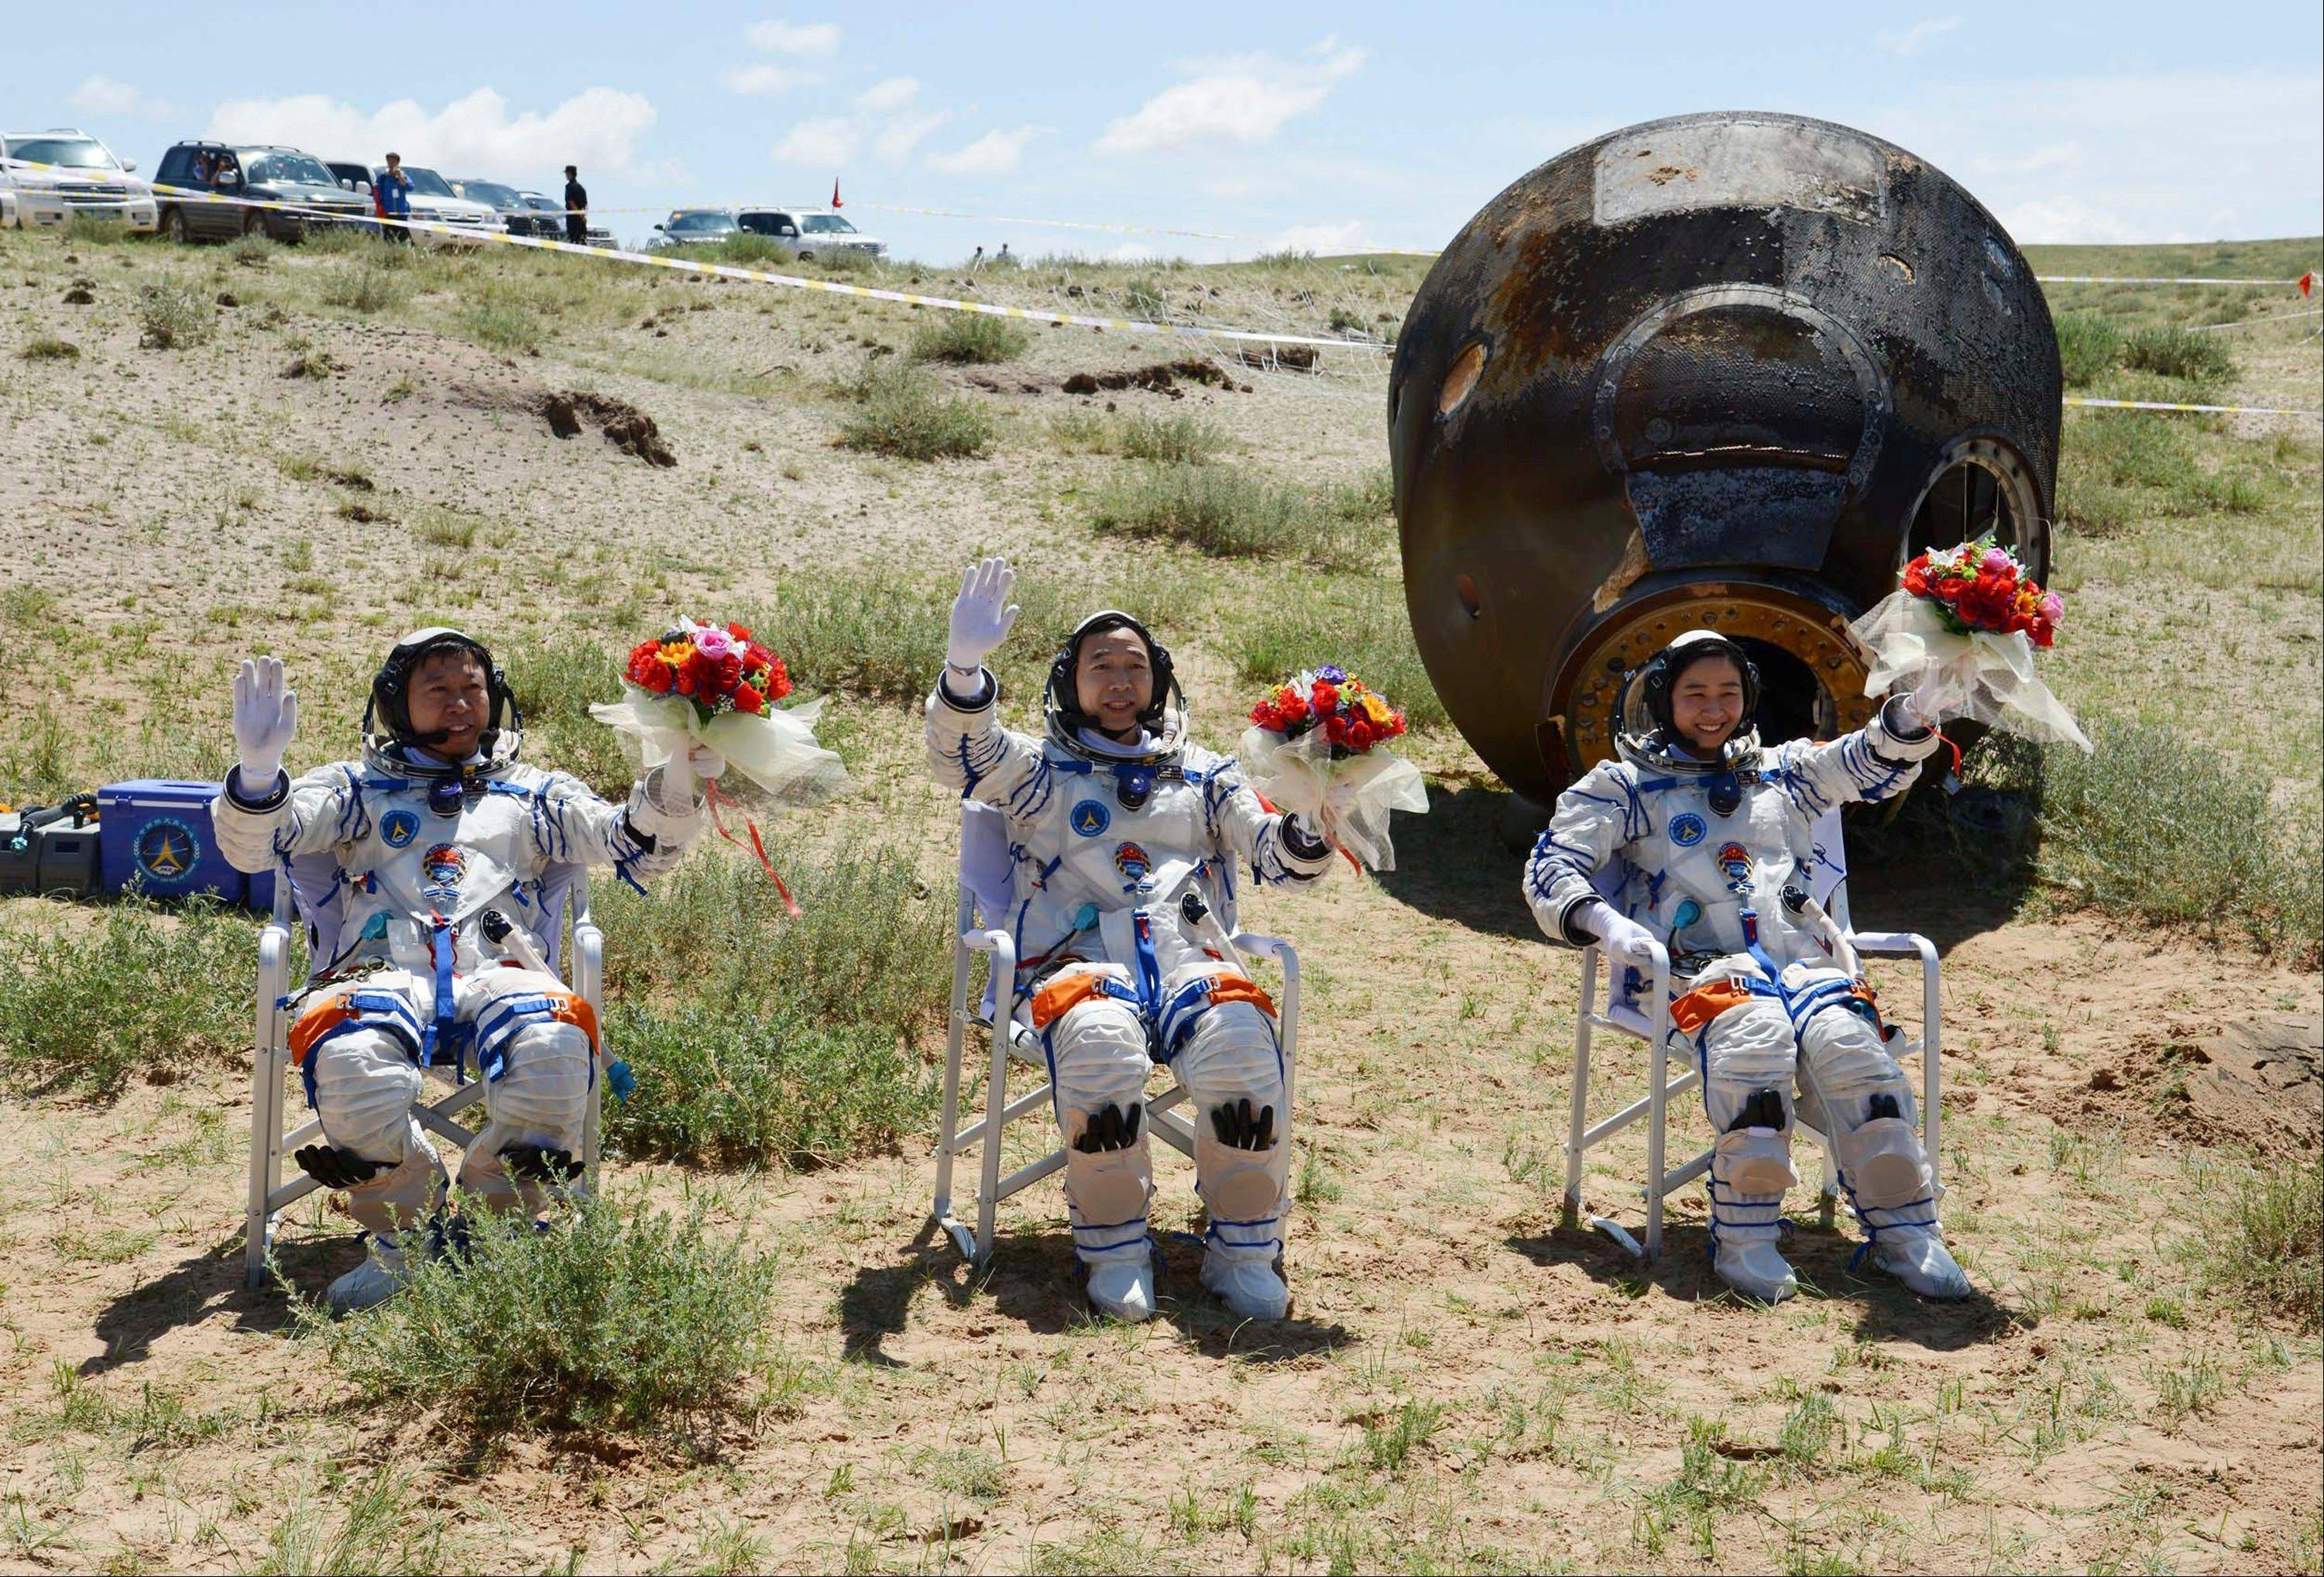 Chinese astronauts, from left, Liu Wang, Jing Haipeng and Liu Yang, wave with flowers after the re-entry capsule of China's Shenzhou 9 spacecraft, back, landed in Siziwang Banner of northern China's Inner Mongolia region.